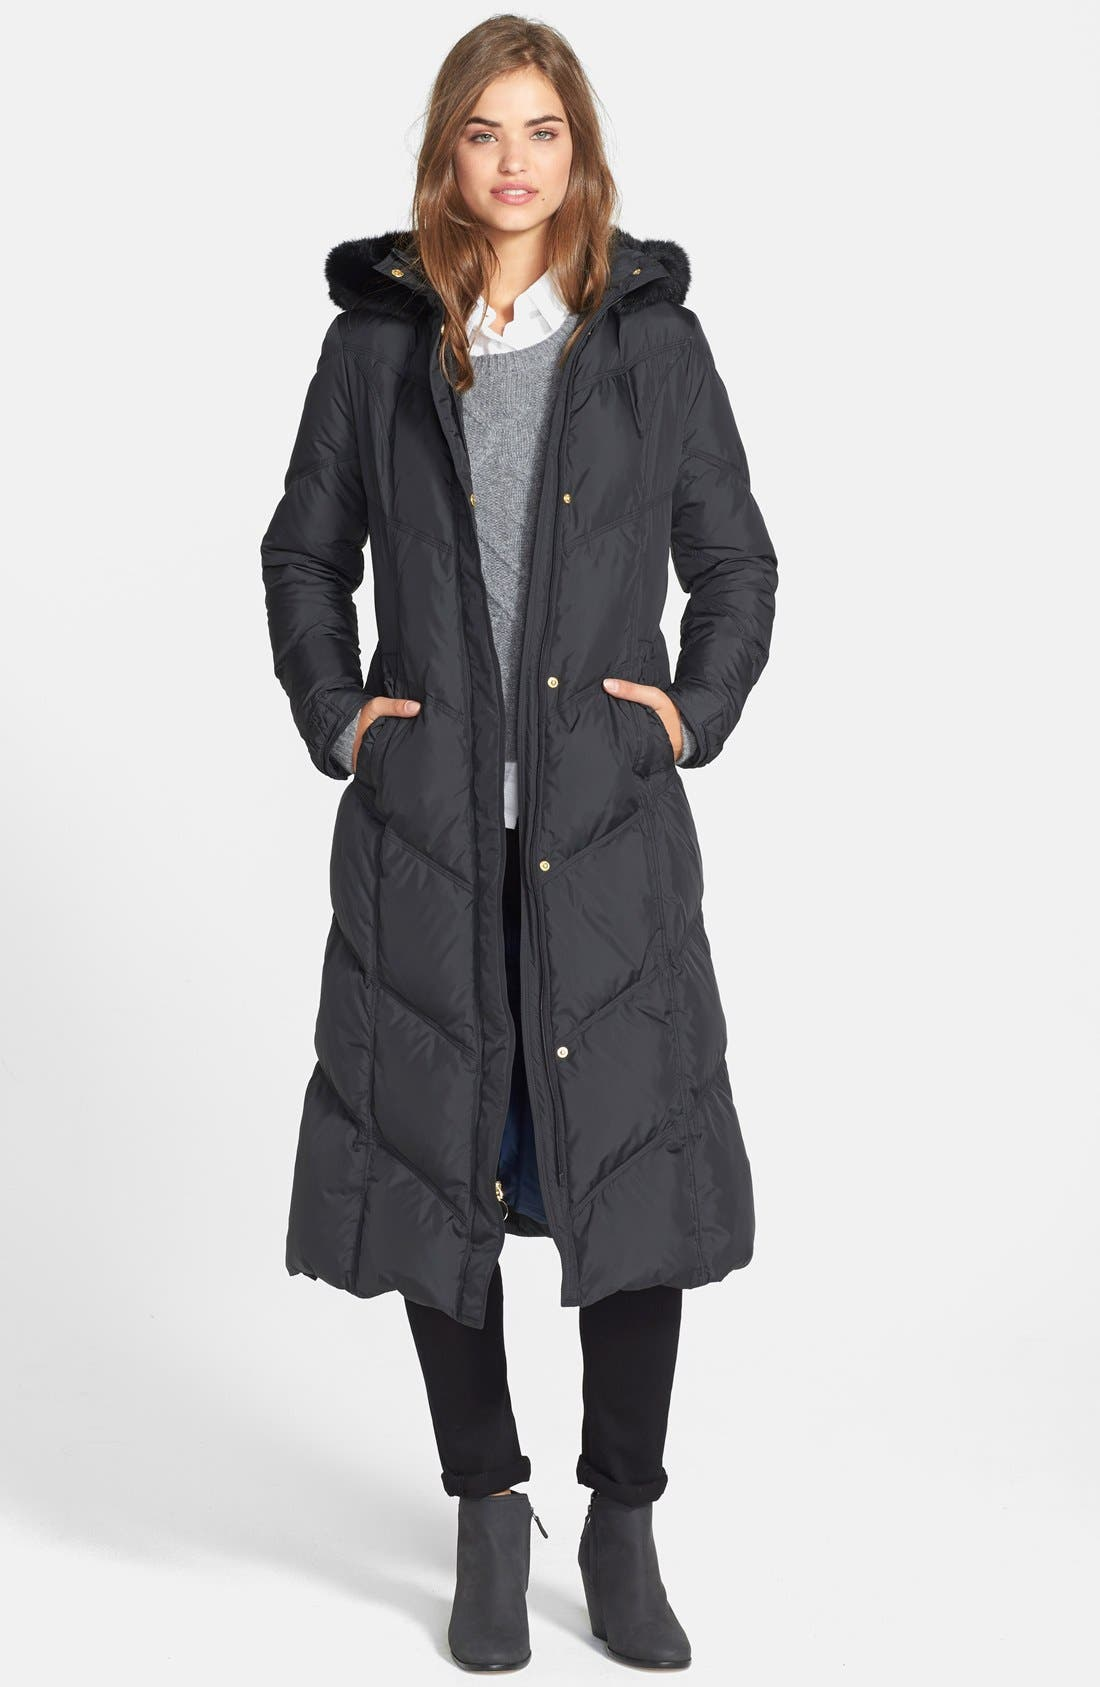 Alternate Image 1 Selected - T Tahari 'Camy' Long Hooded Down Coat with Genuine Rabbit Fur Trim (Online Only)